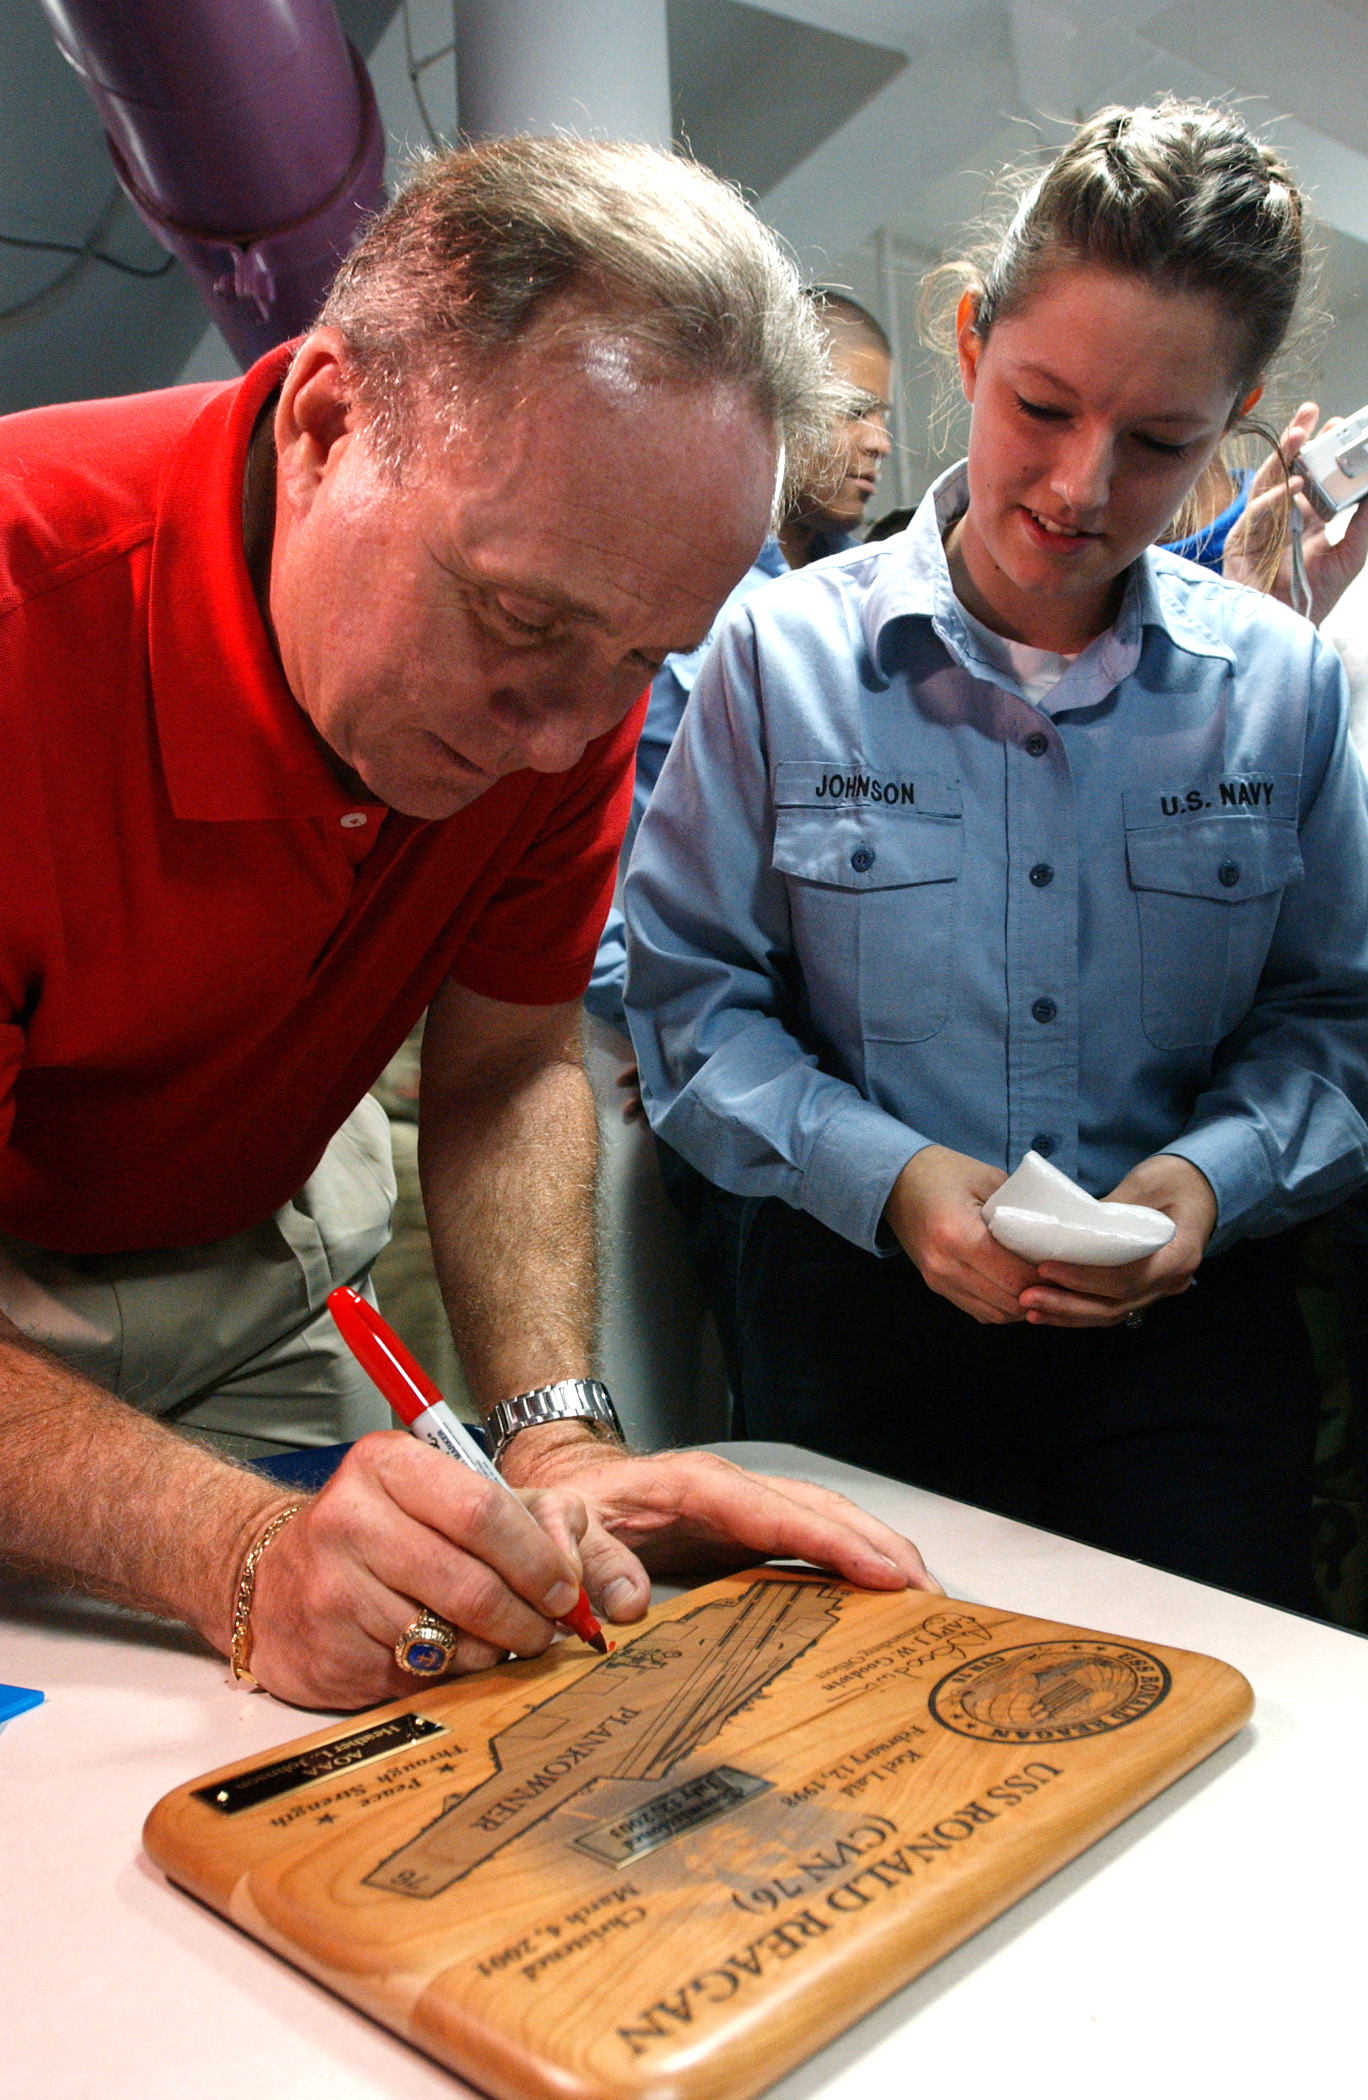 US Navy 040722-N-8148A-162 Michael Reagan, son of former President Ronald W. Reagan, autographs a plank owner plaque for Aviation Ordnanceman Airman Heather Johnson, of Saginaw, Mich